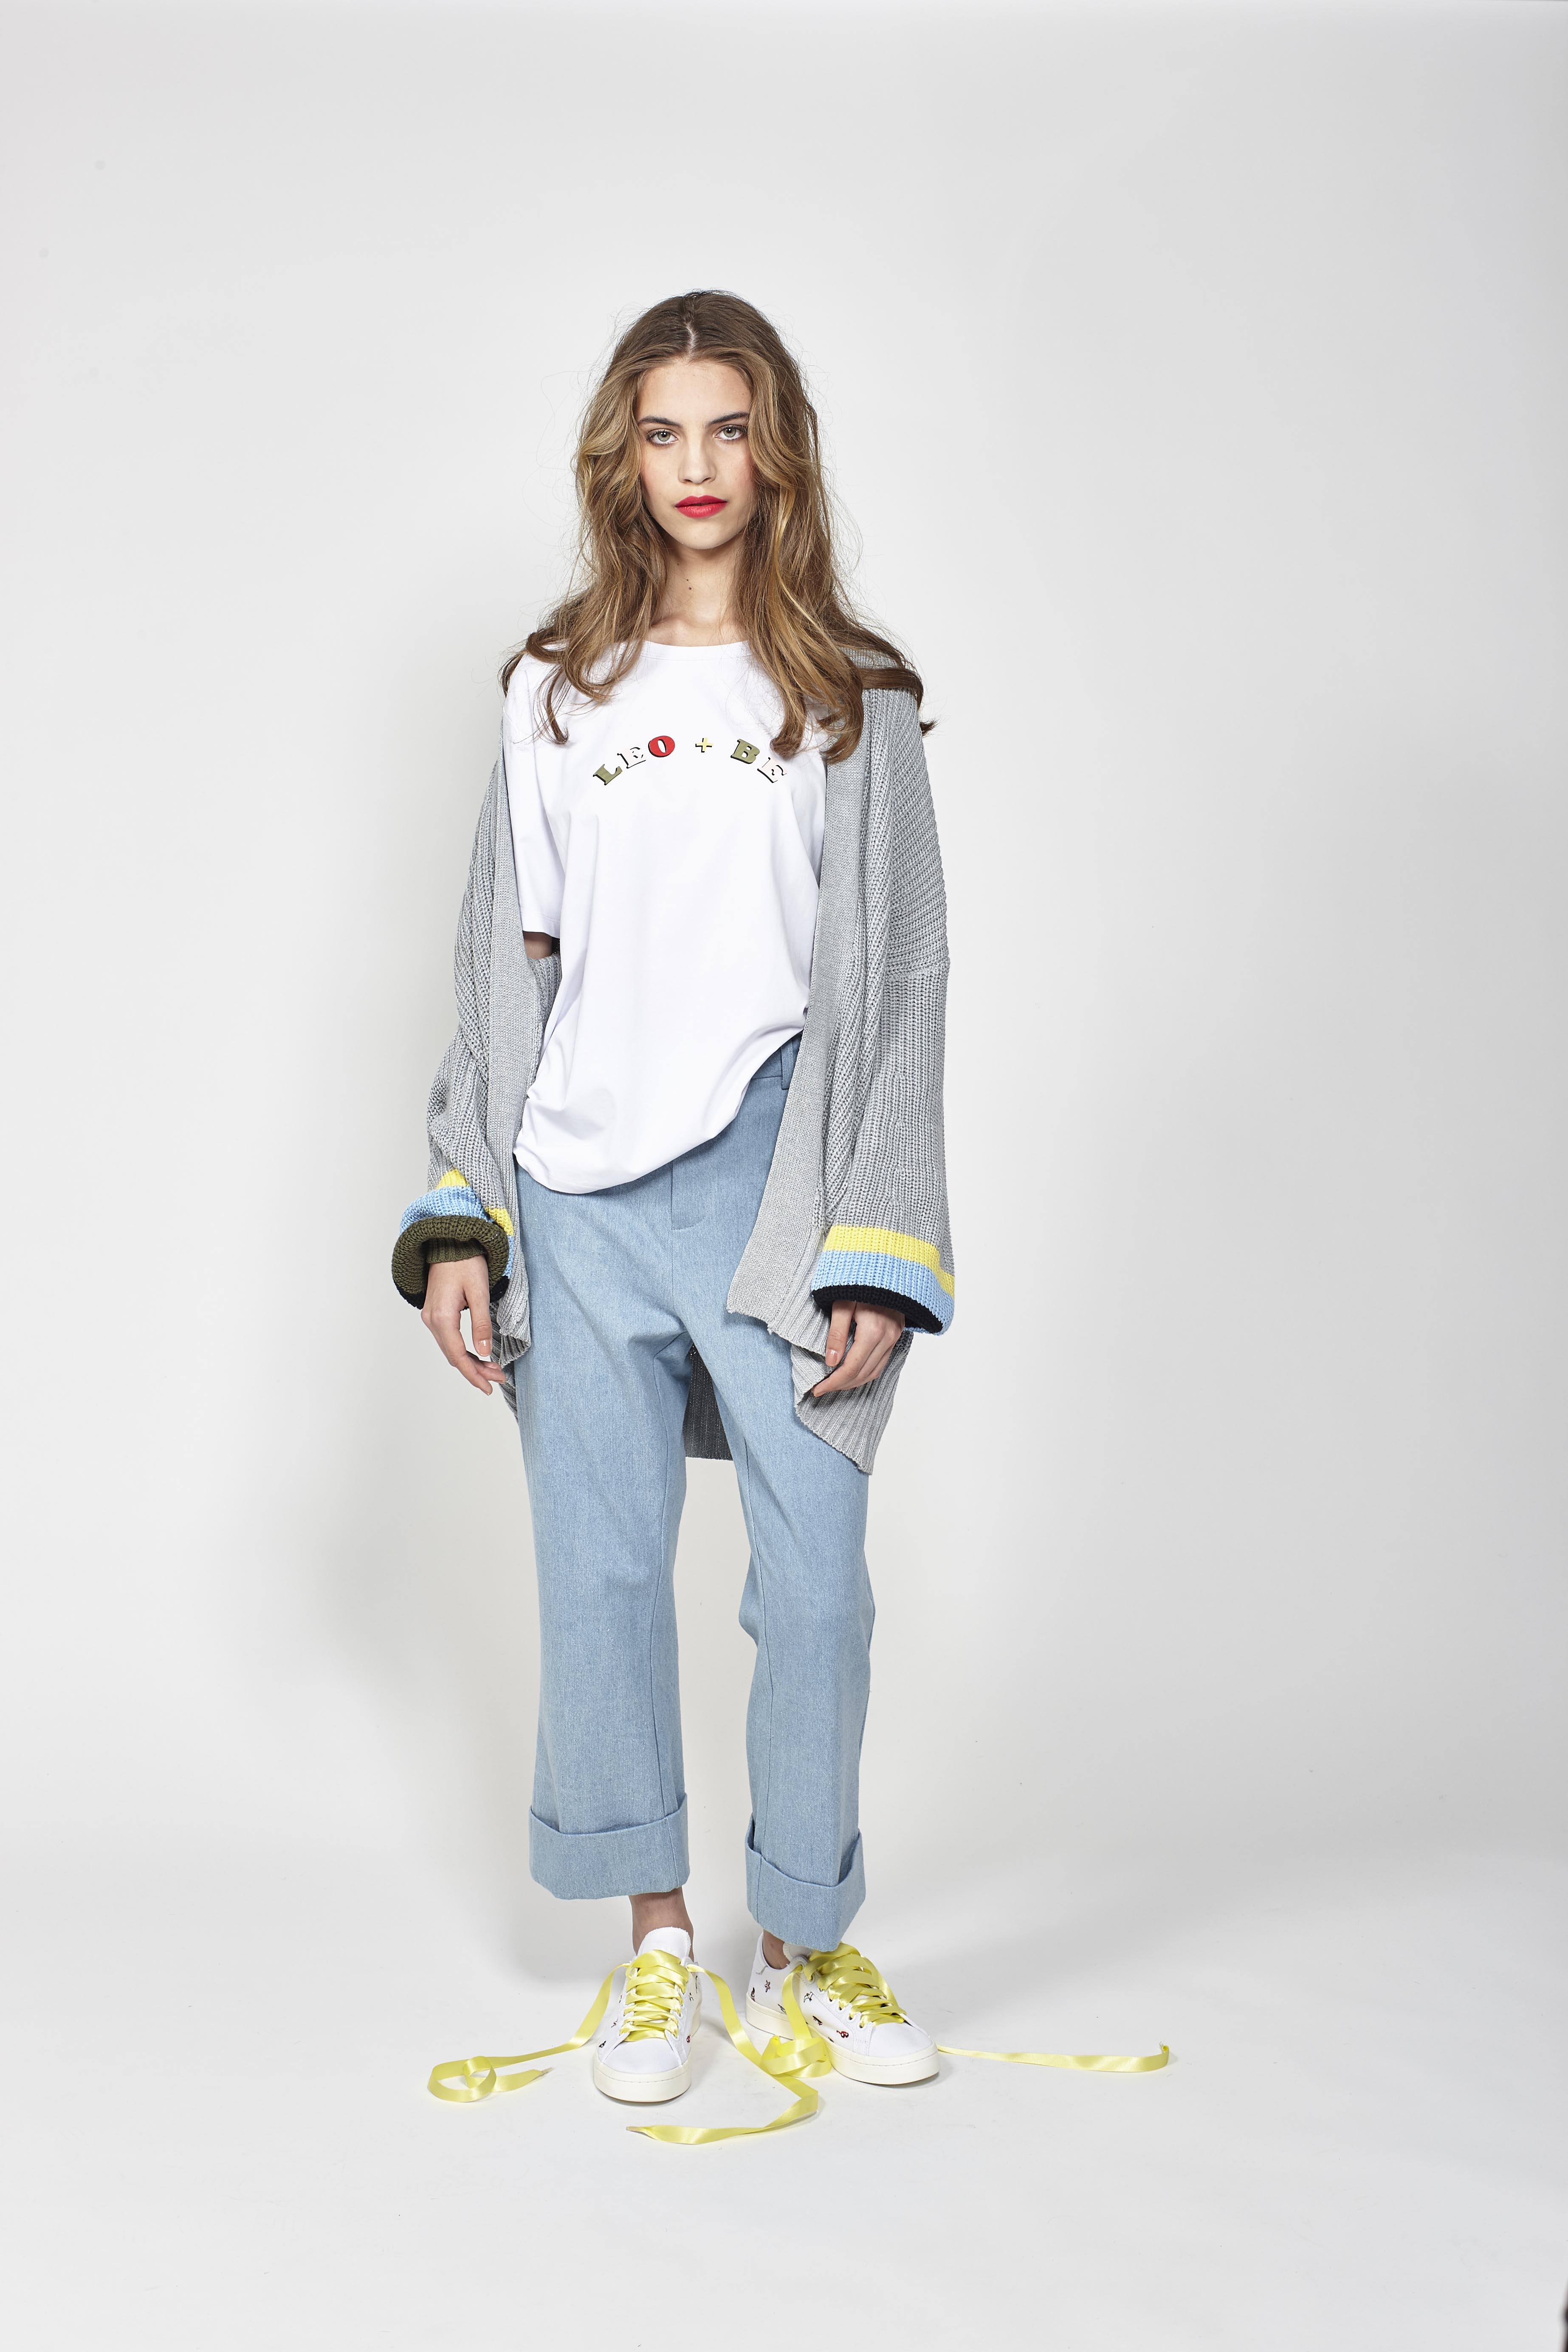 LB1092 LEO+BE Wildfire Cardi, RRP$188.00, LB1070 LEO+BE Wonderful Tee, RRP$98.00 and LB1094 LEO+BE Rad Pant, RRP$159.00